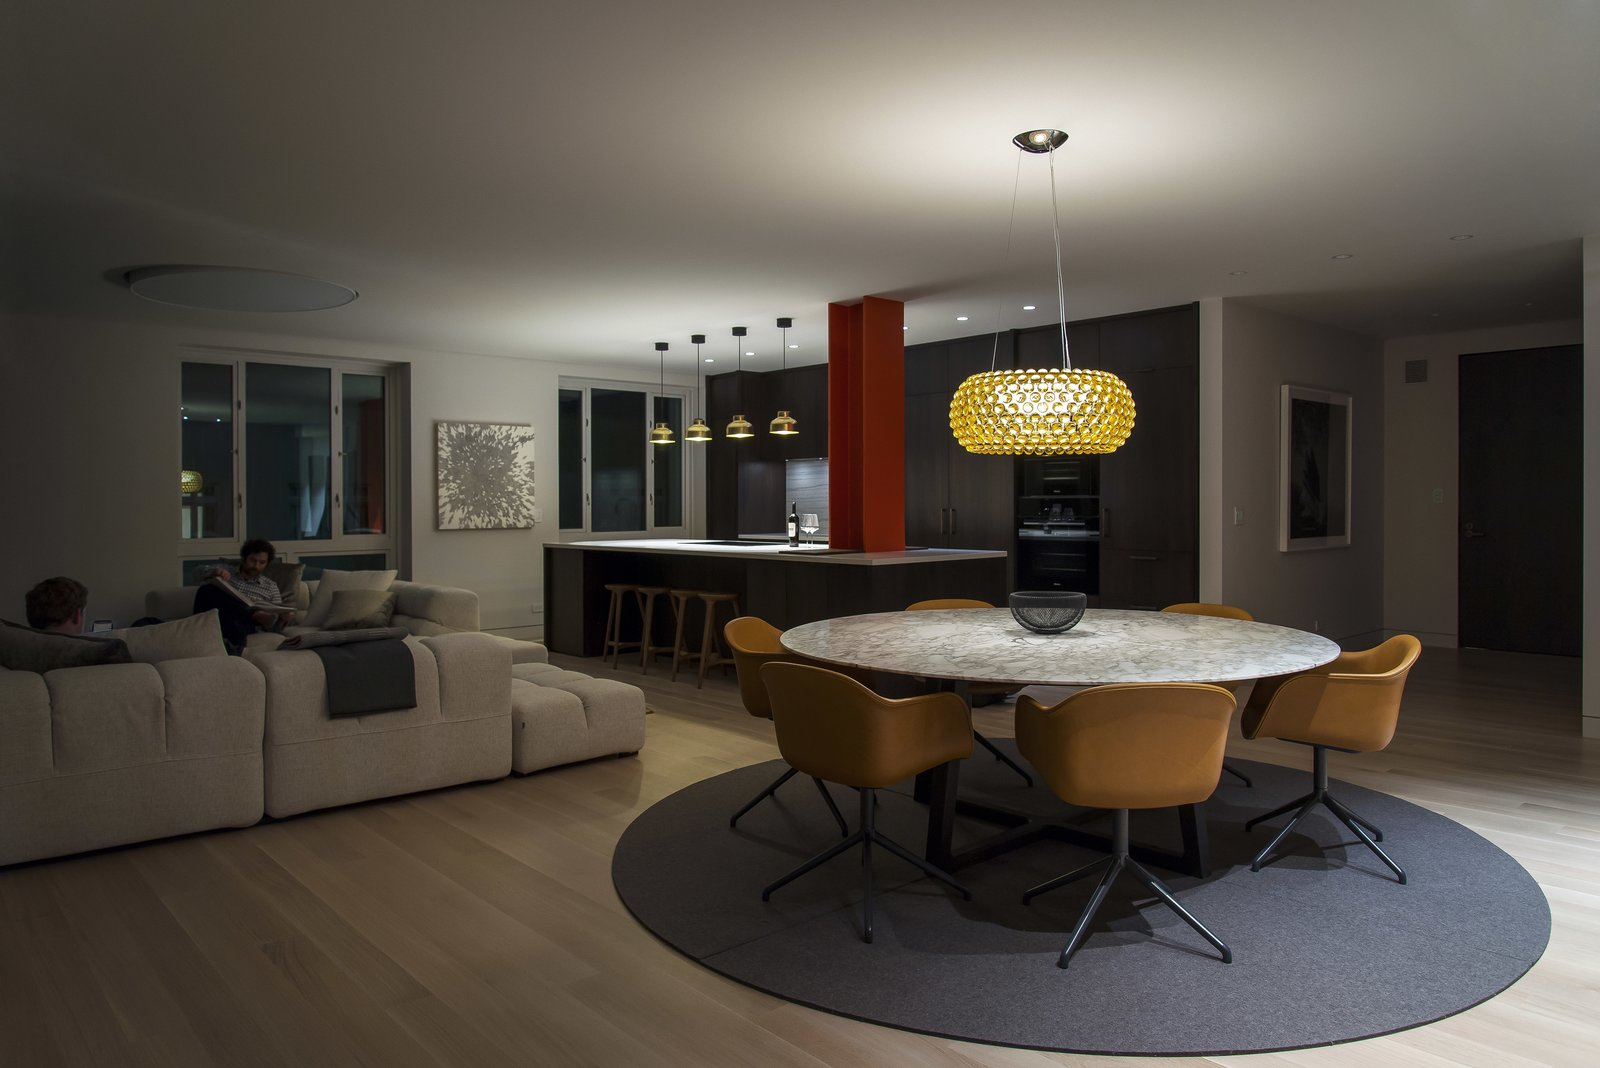 Dining Room - Looking Toward Kitchen  Nob Hill Residence by Imbue Design